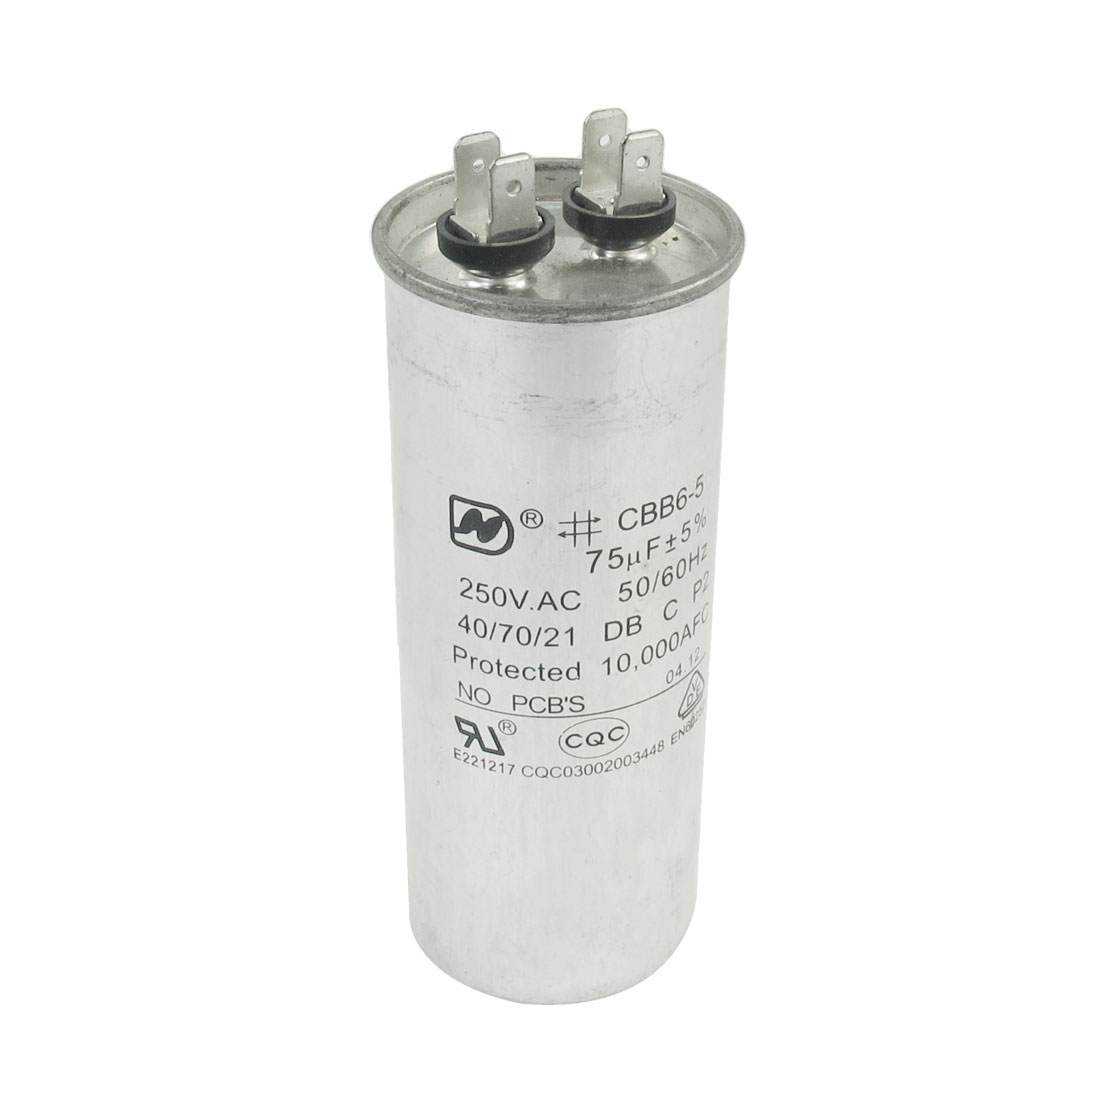 Washing Machine Lug Terminal Motor Start Capacitor 250VAC 75uF CBB6-5